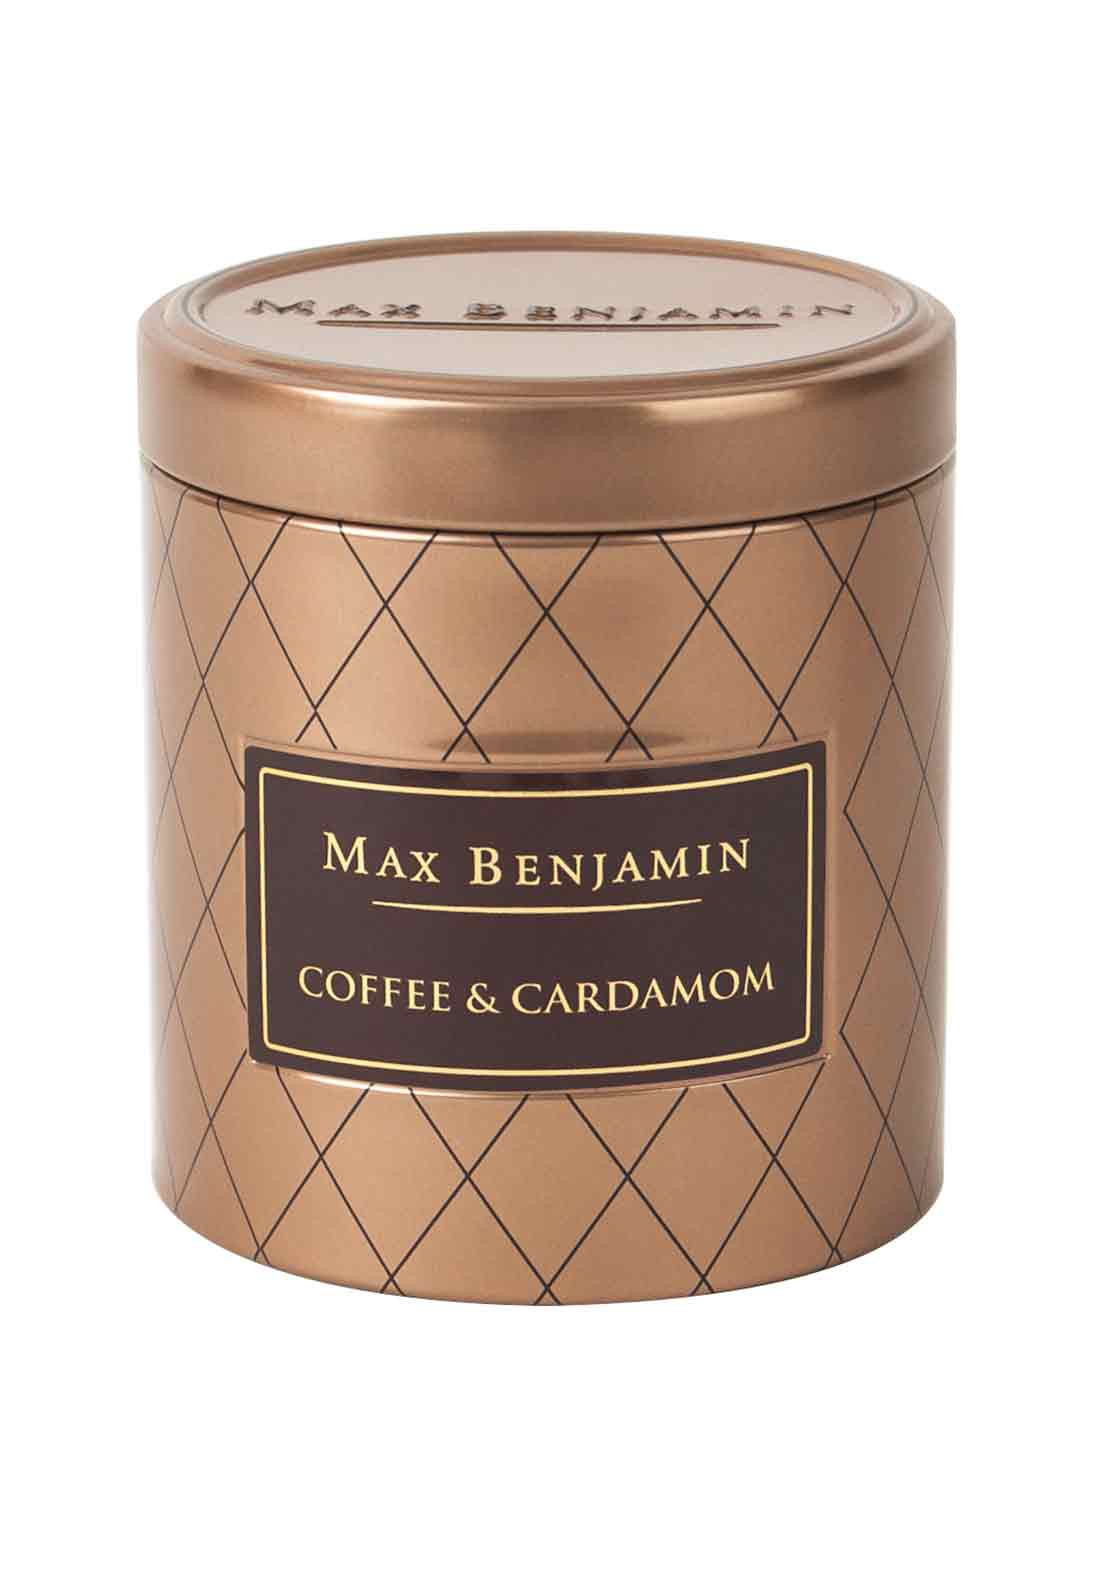 Max Benjamin Coffee & Cardamom Scented Candle, 170g